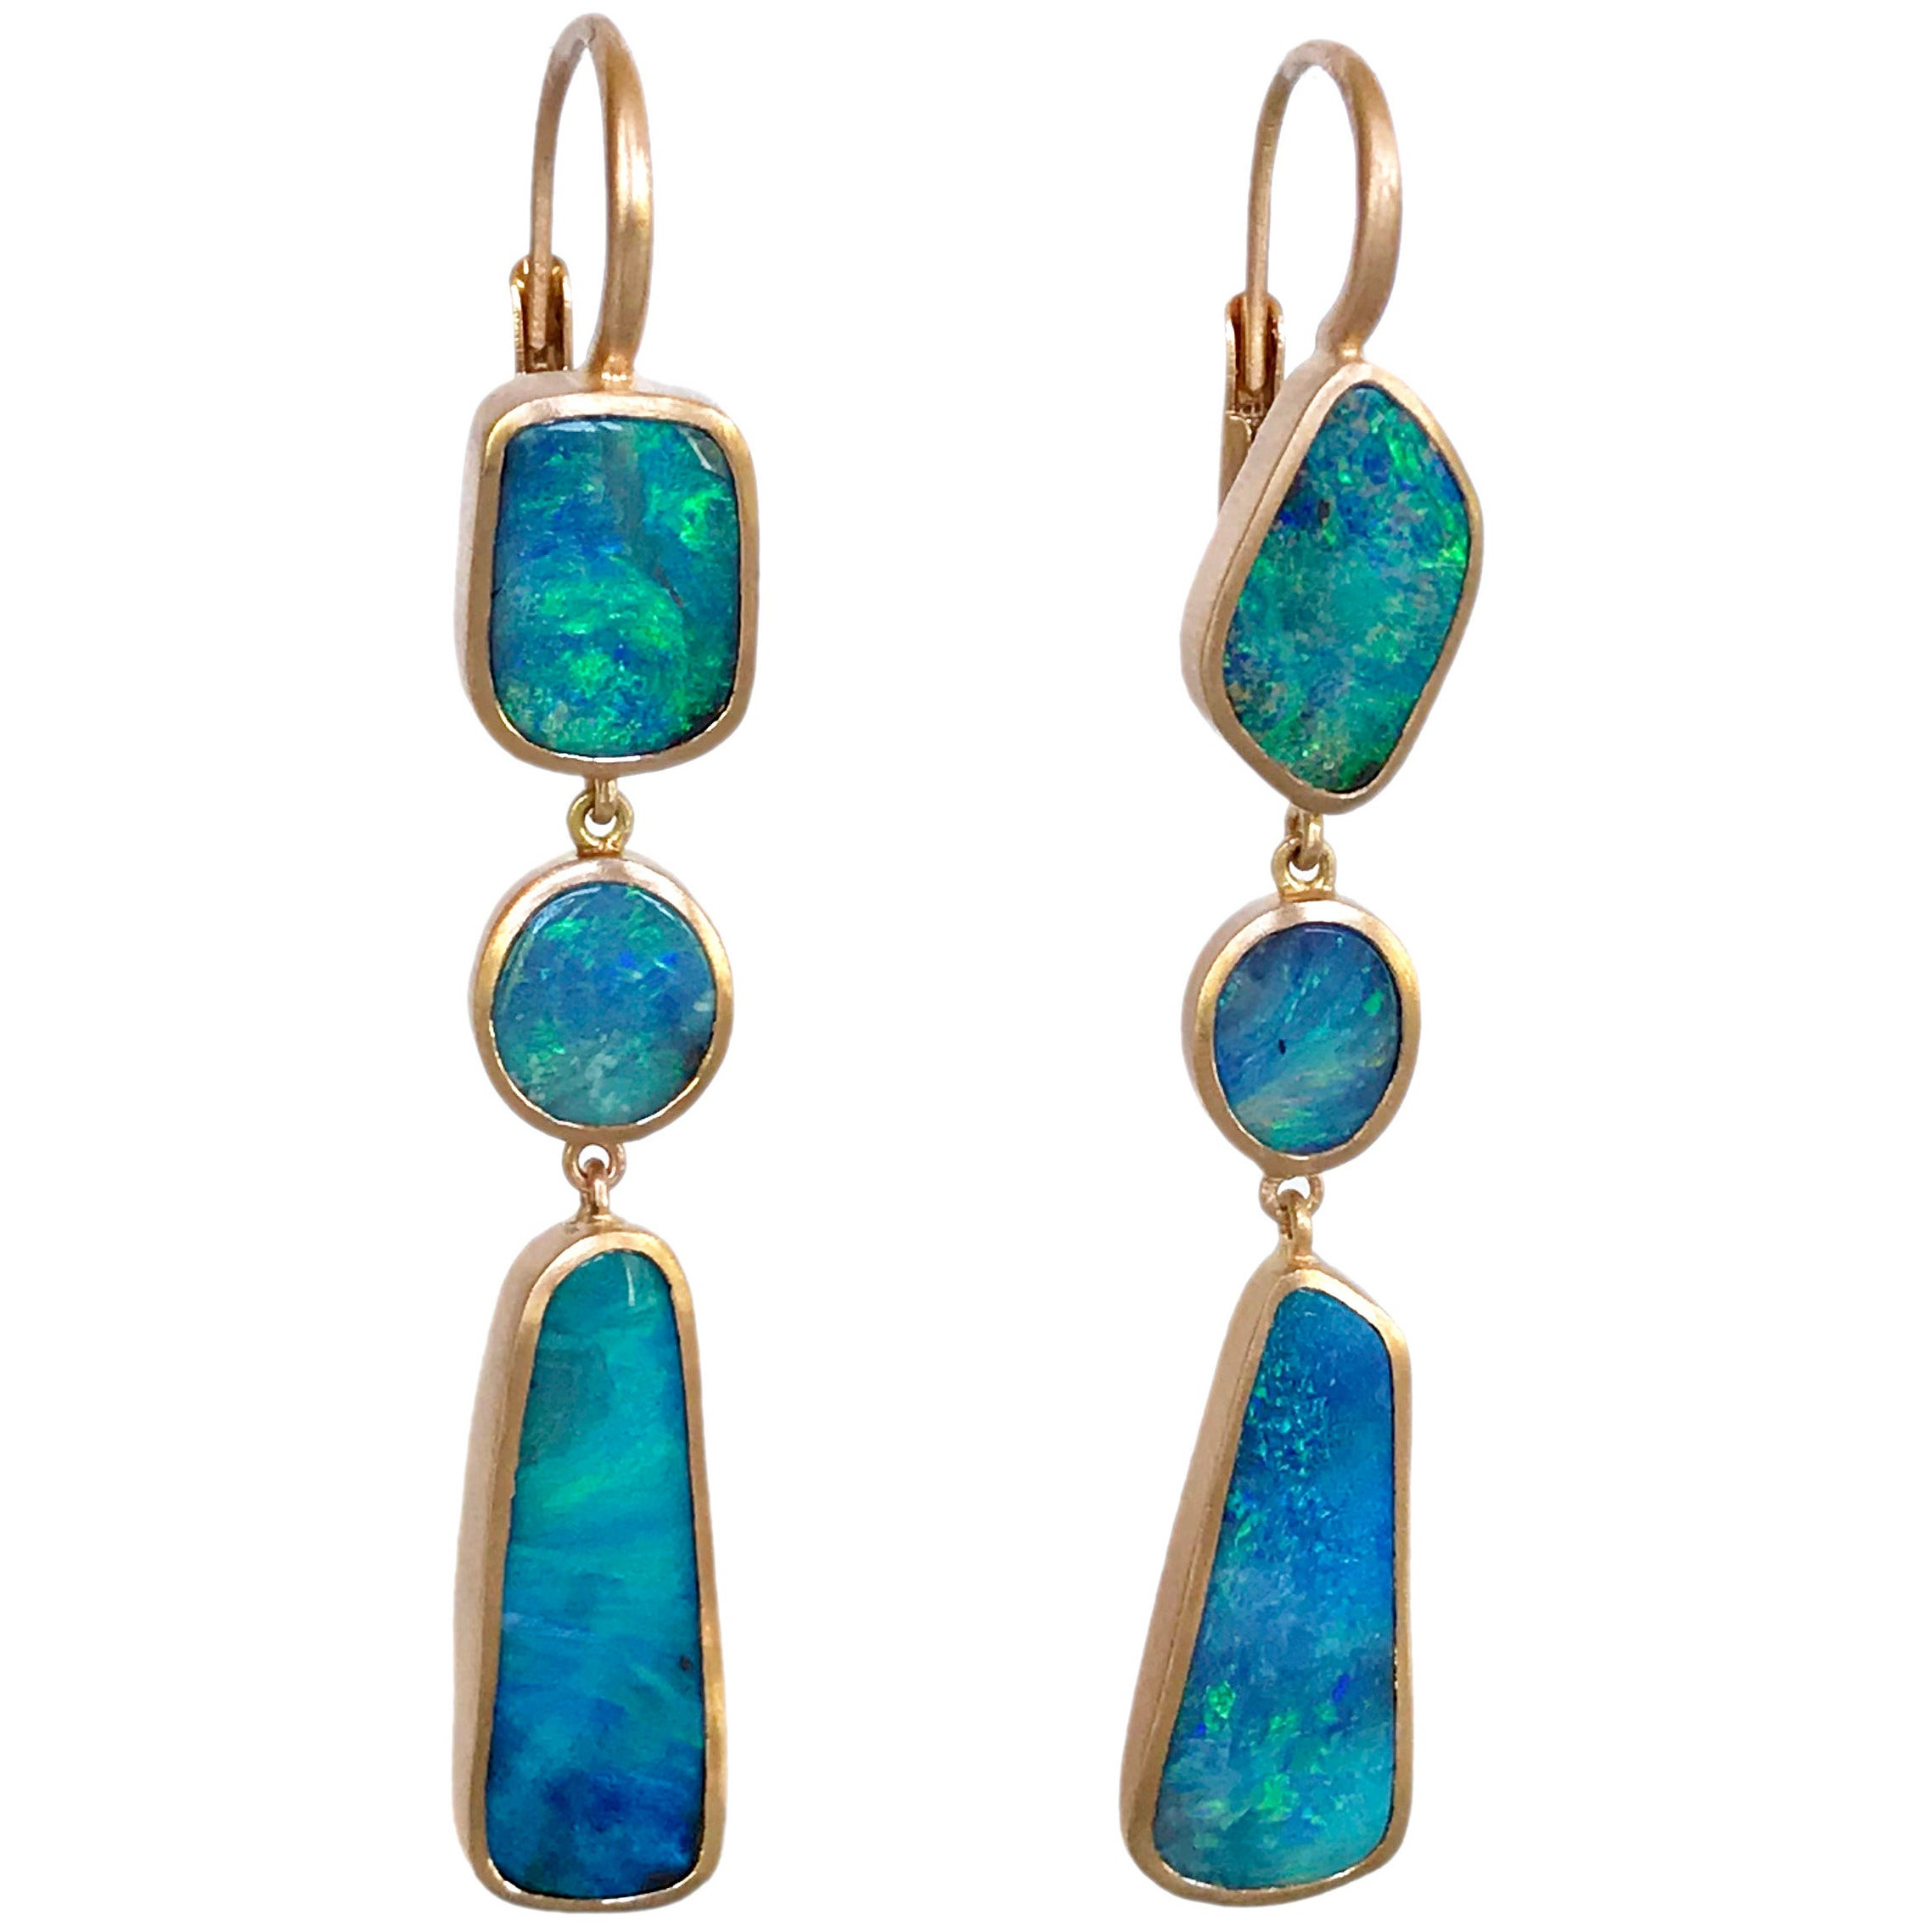 Dalben Australian Boulder Opal Light Blue Rose Gold Dangle Earrings